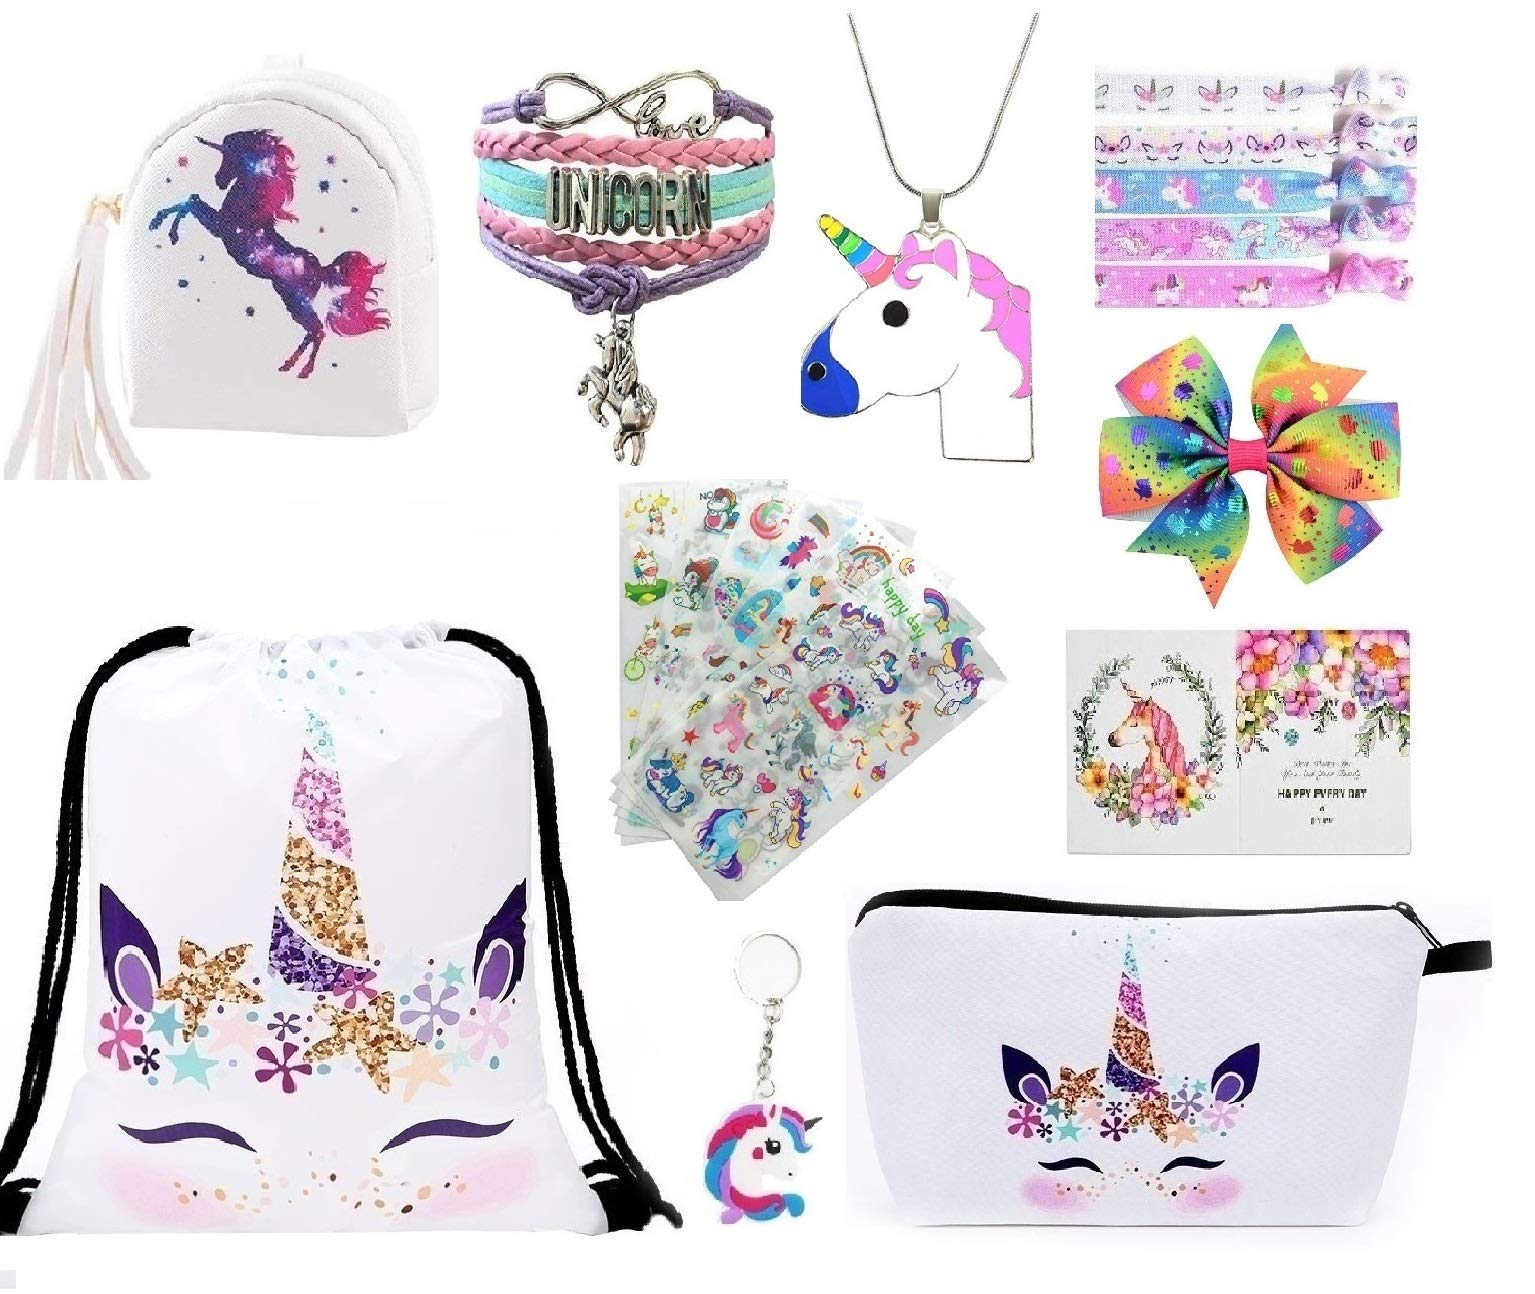 The Perfect Set for Any Unicorn Lover!